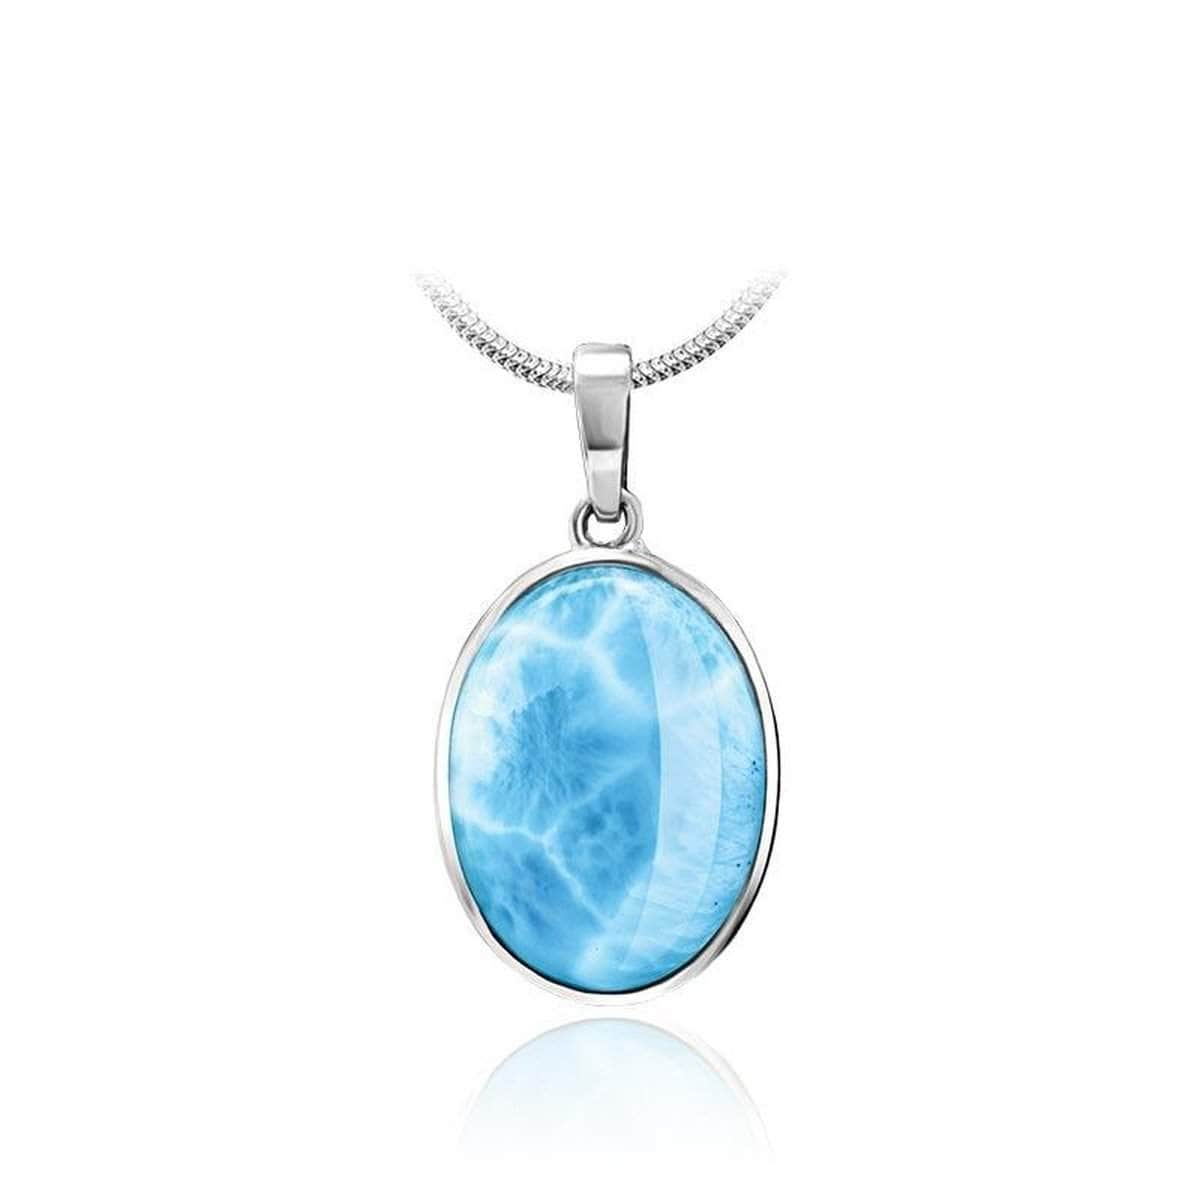 Basic Oval Necklace - Nbasi00-00-Marahlago Larimar-Renee Taylor Gallery